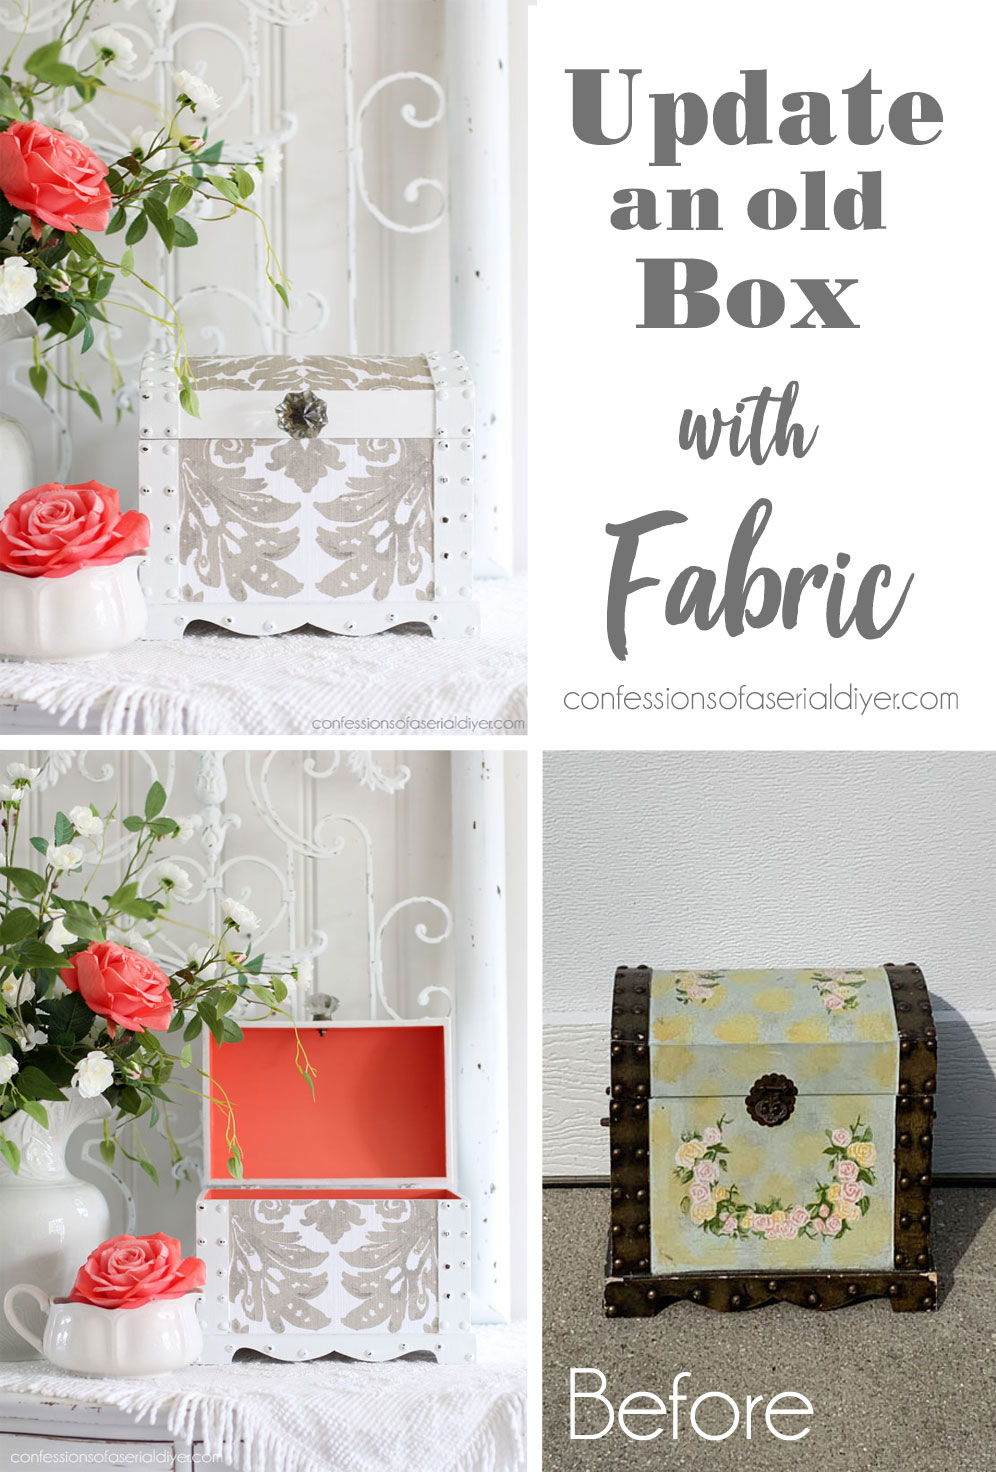 Update an old box with paint and fabric!